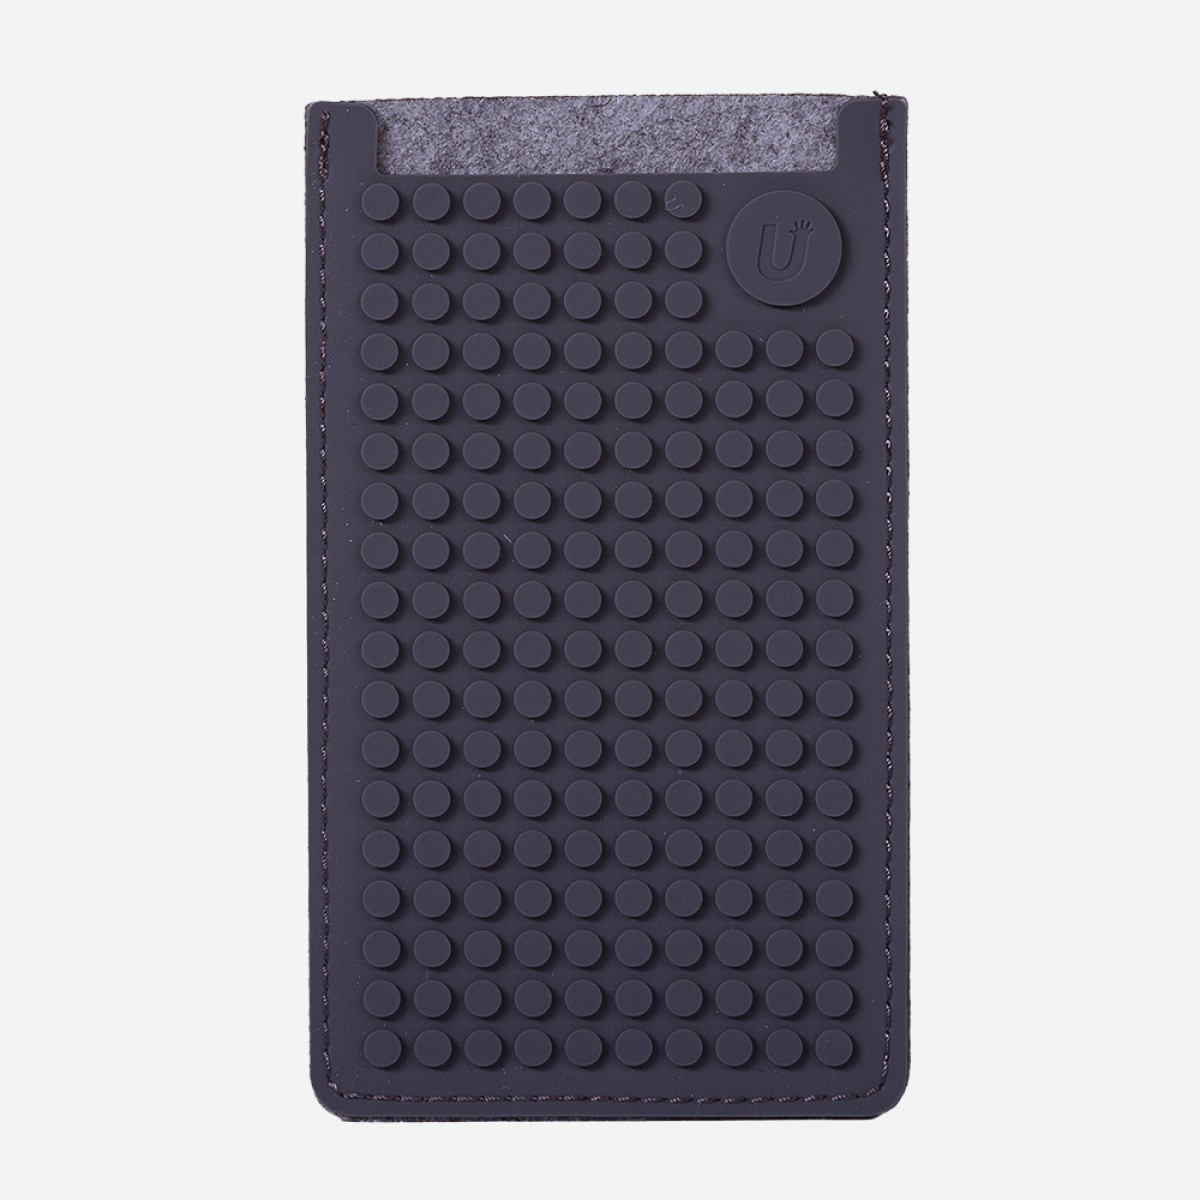 UPixel Pixel Phone Case Small - Grey